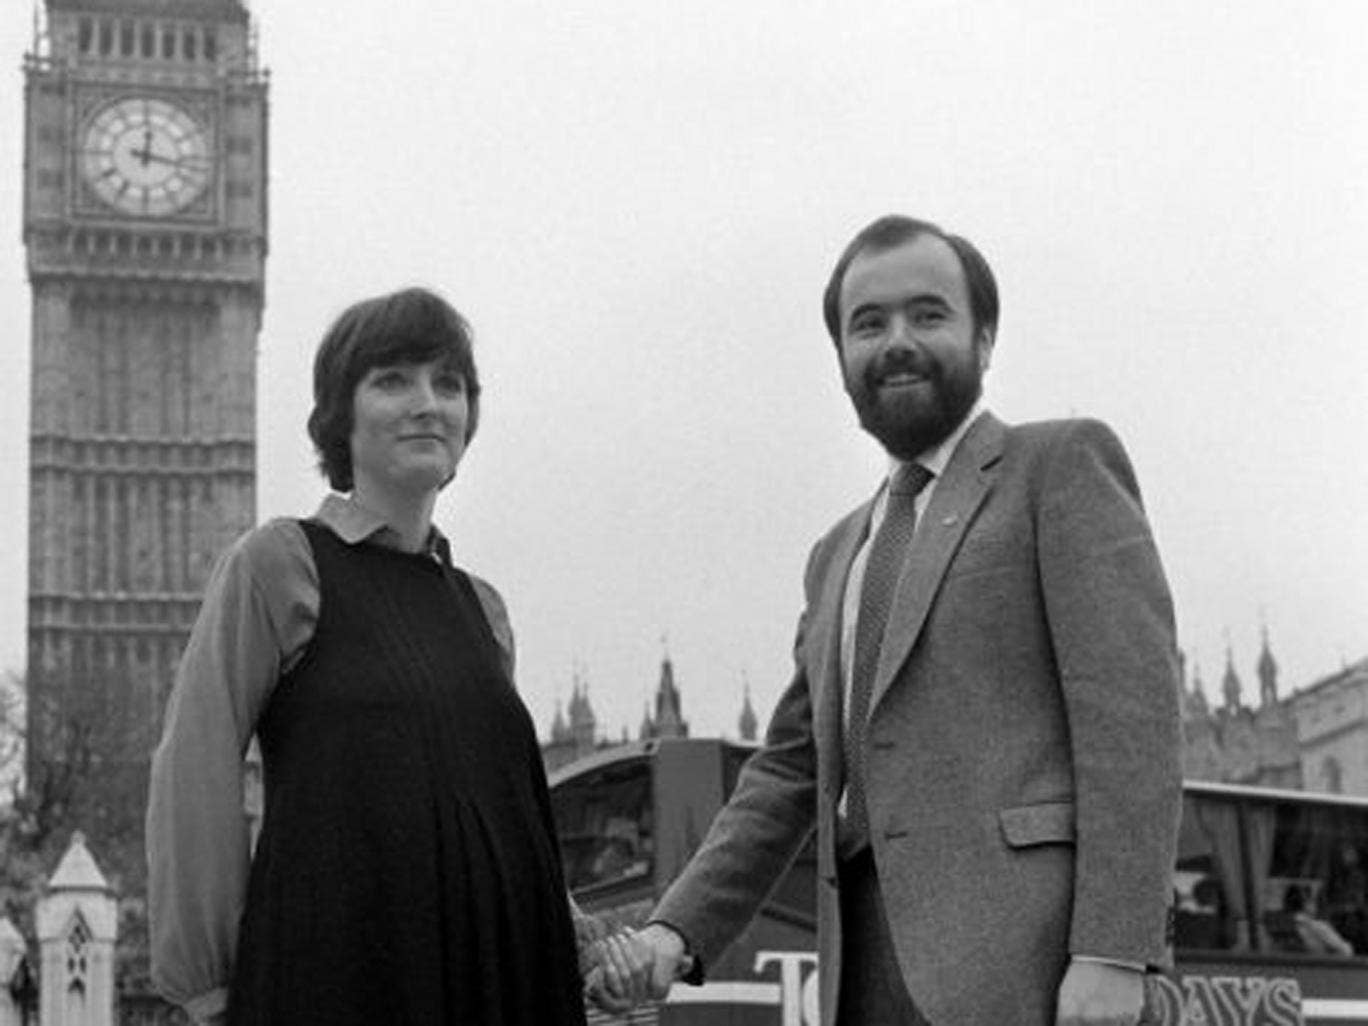 Harman and her Husband Jack Dromey outside the Houses of Parliament in 1982